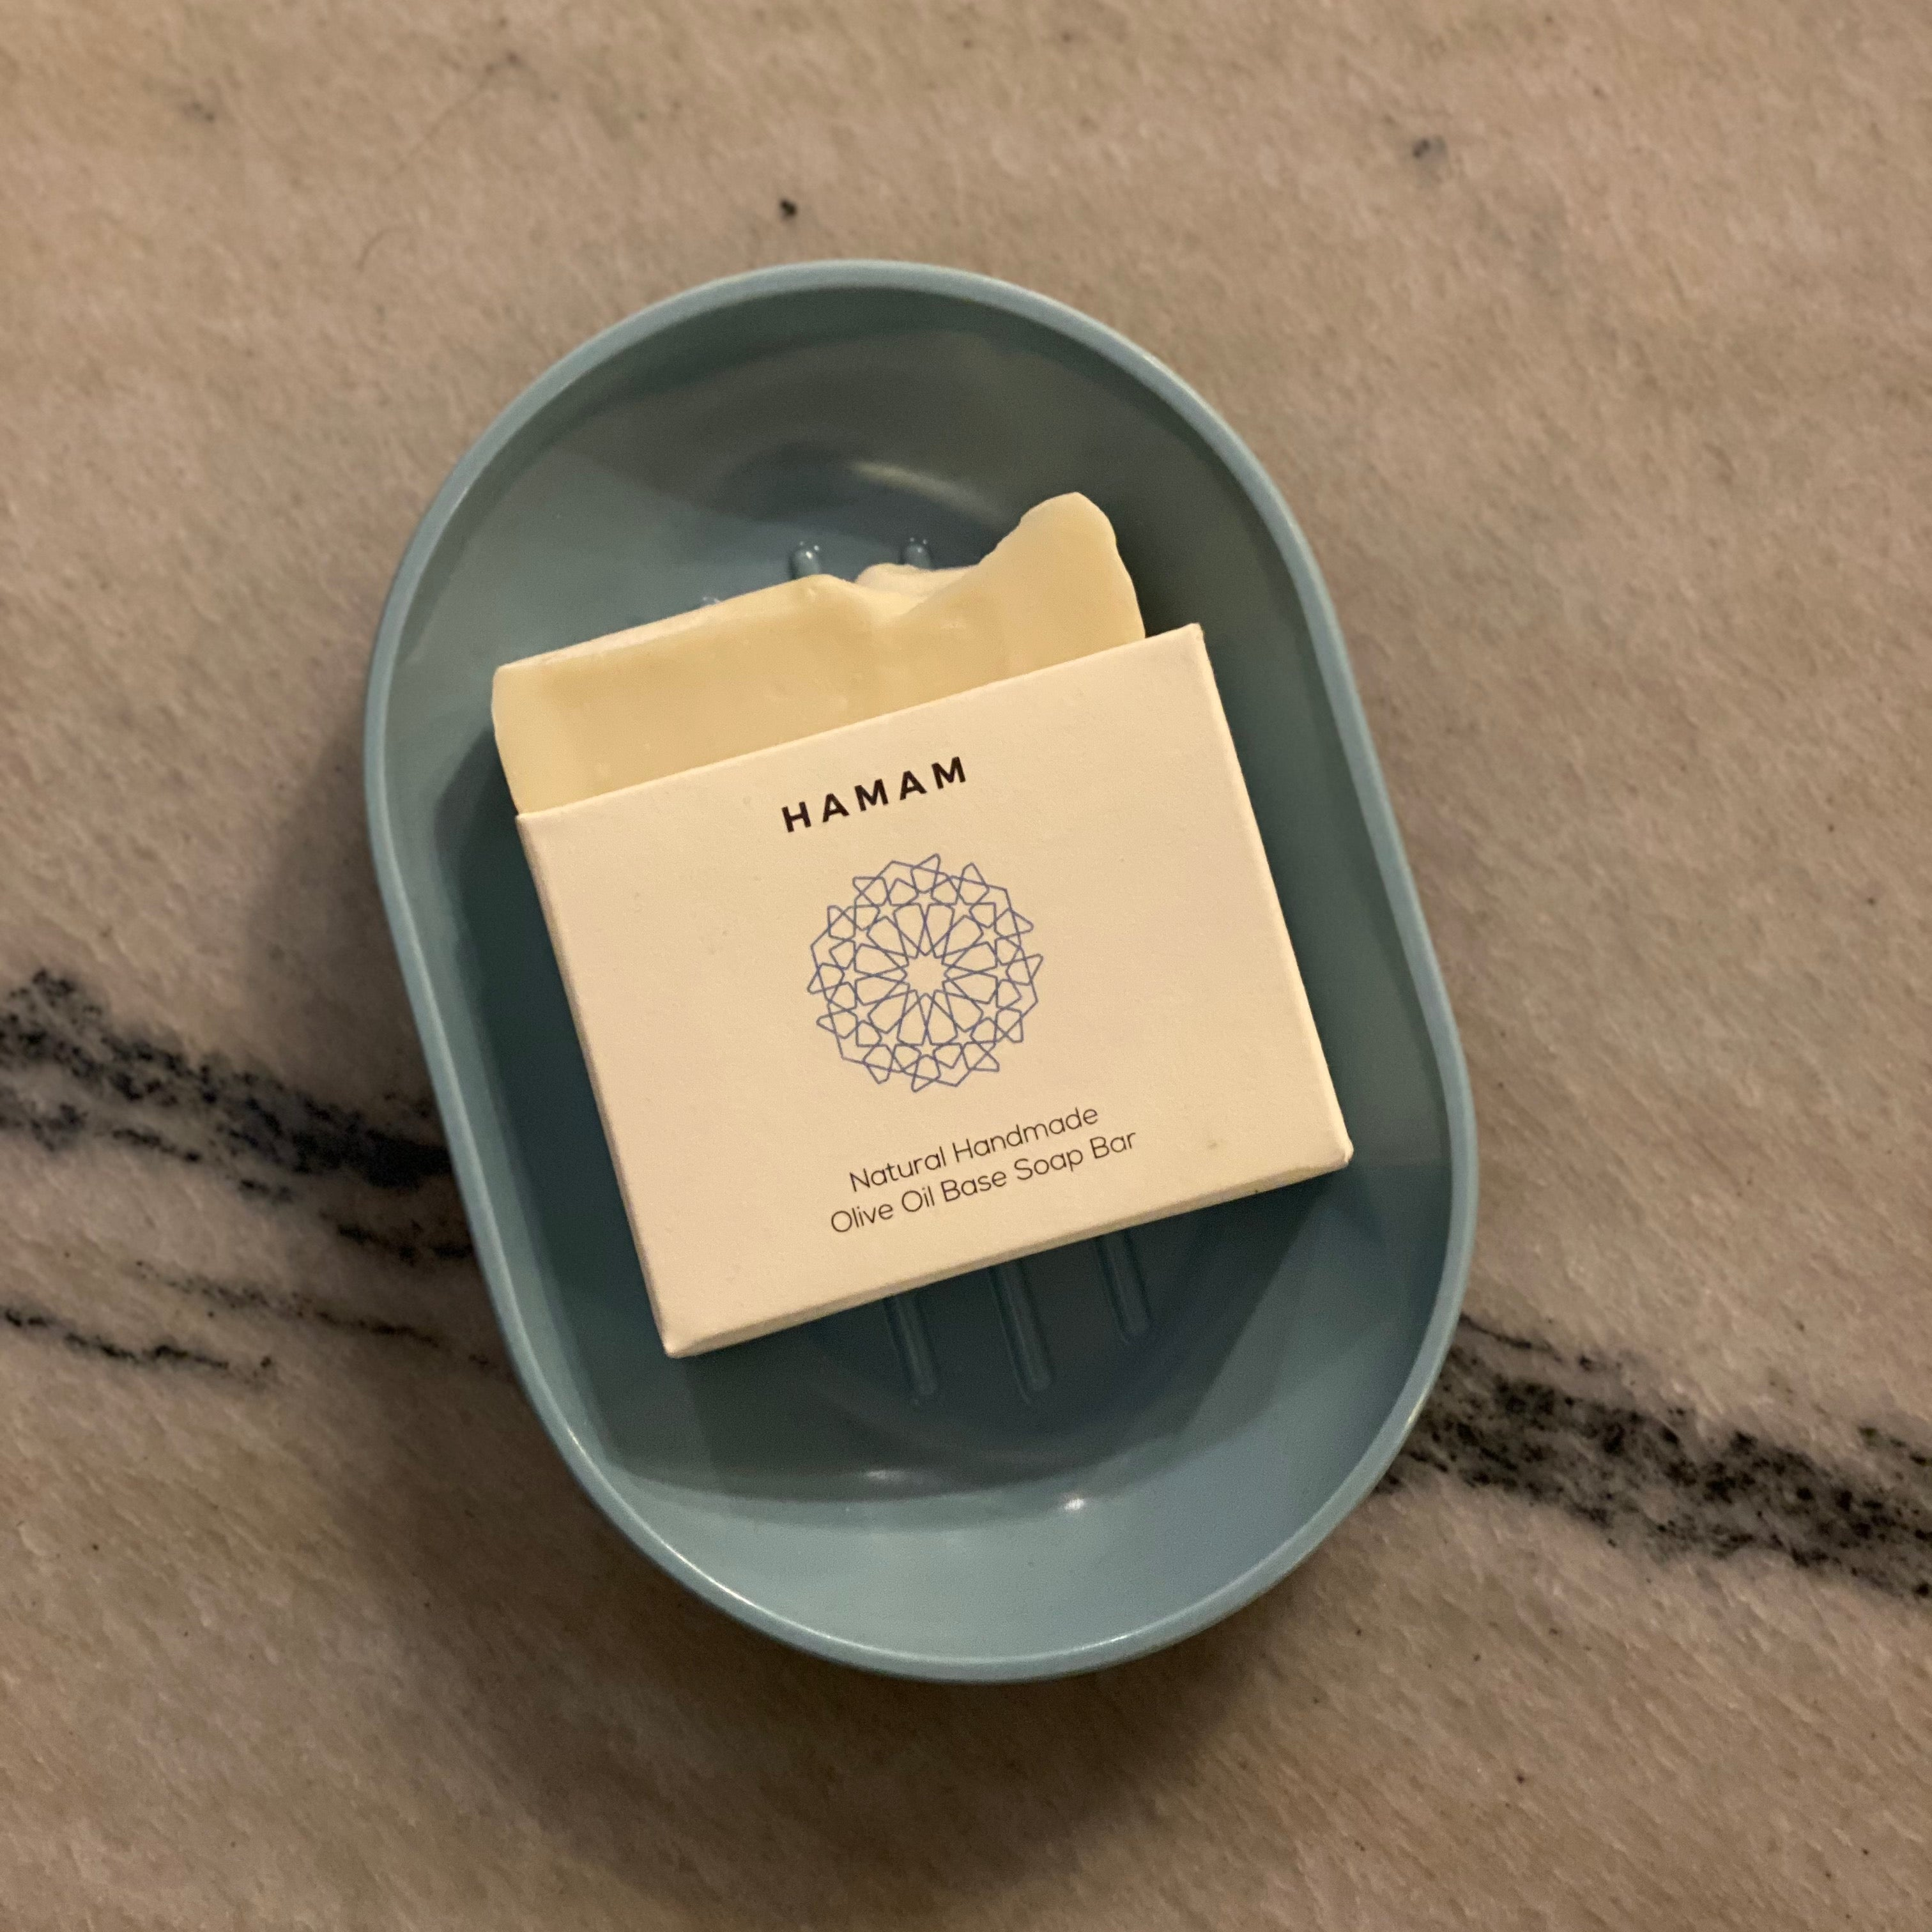 Hamam Artisan Soap Bar